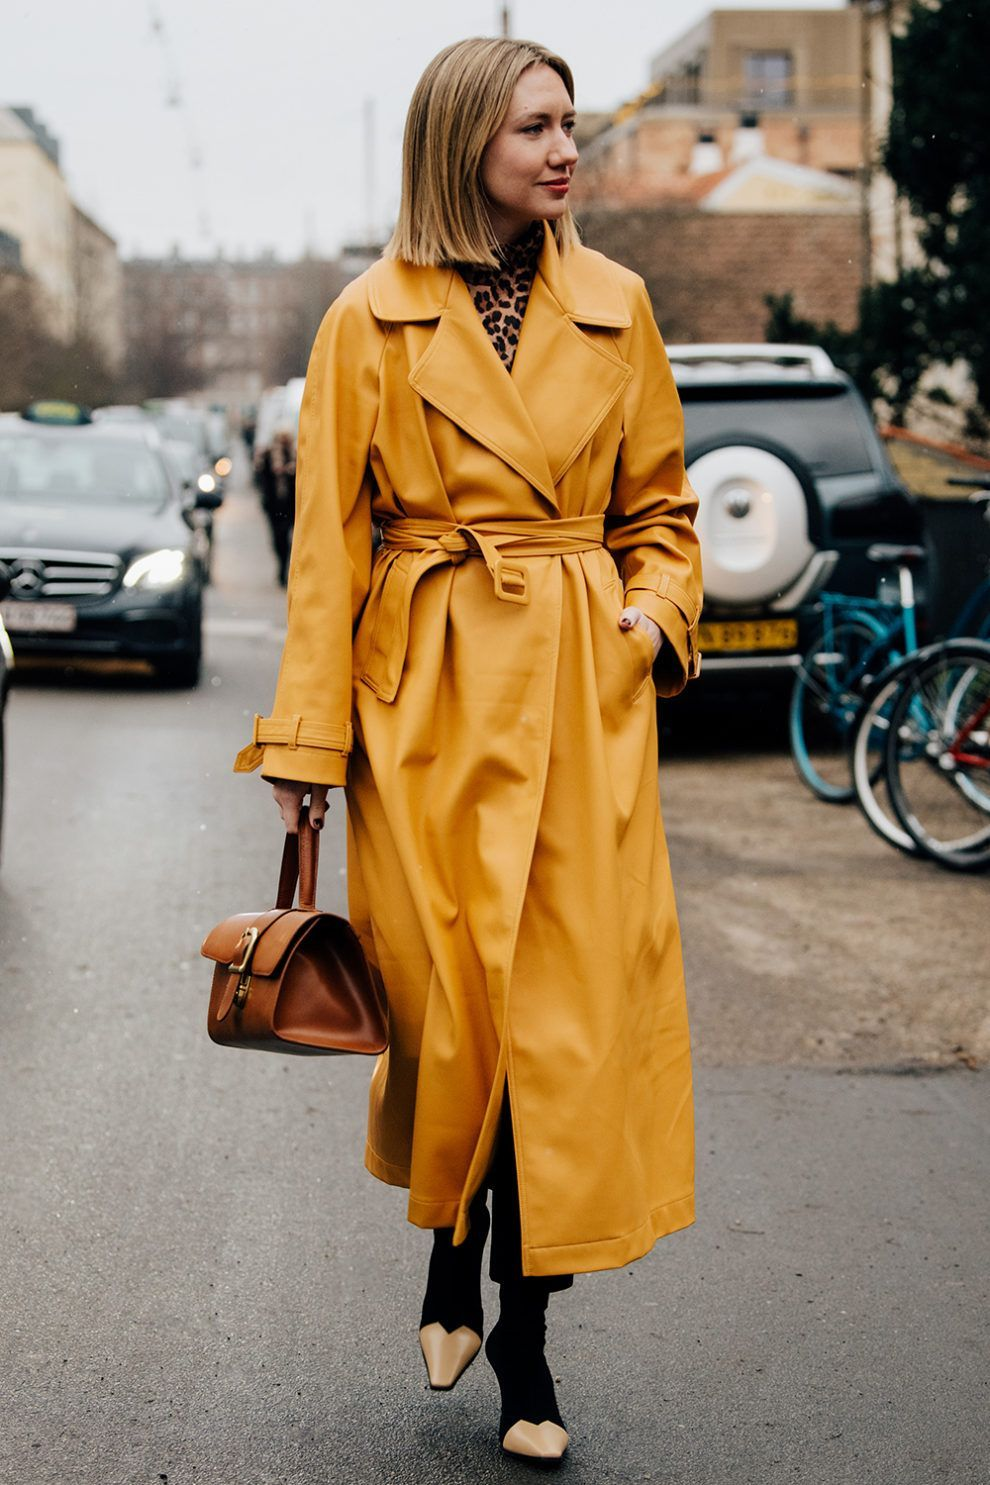 Yellow Eco Leather Trench Outfit - Copenhagen Fashion Week | Cool street fashion, Copenhagen fashion week, Street style trends